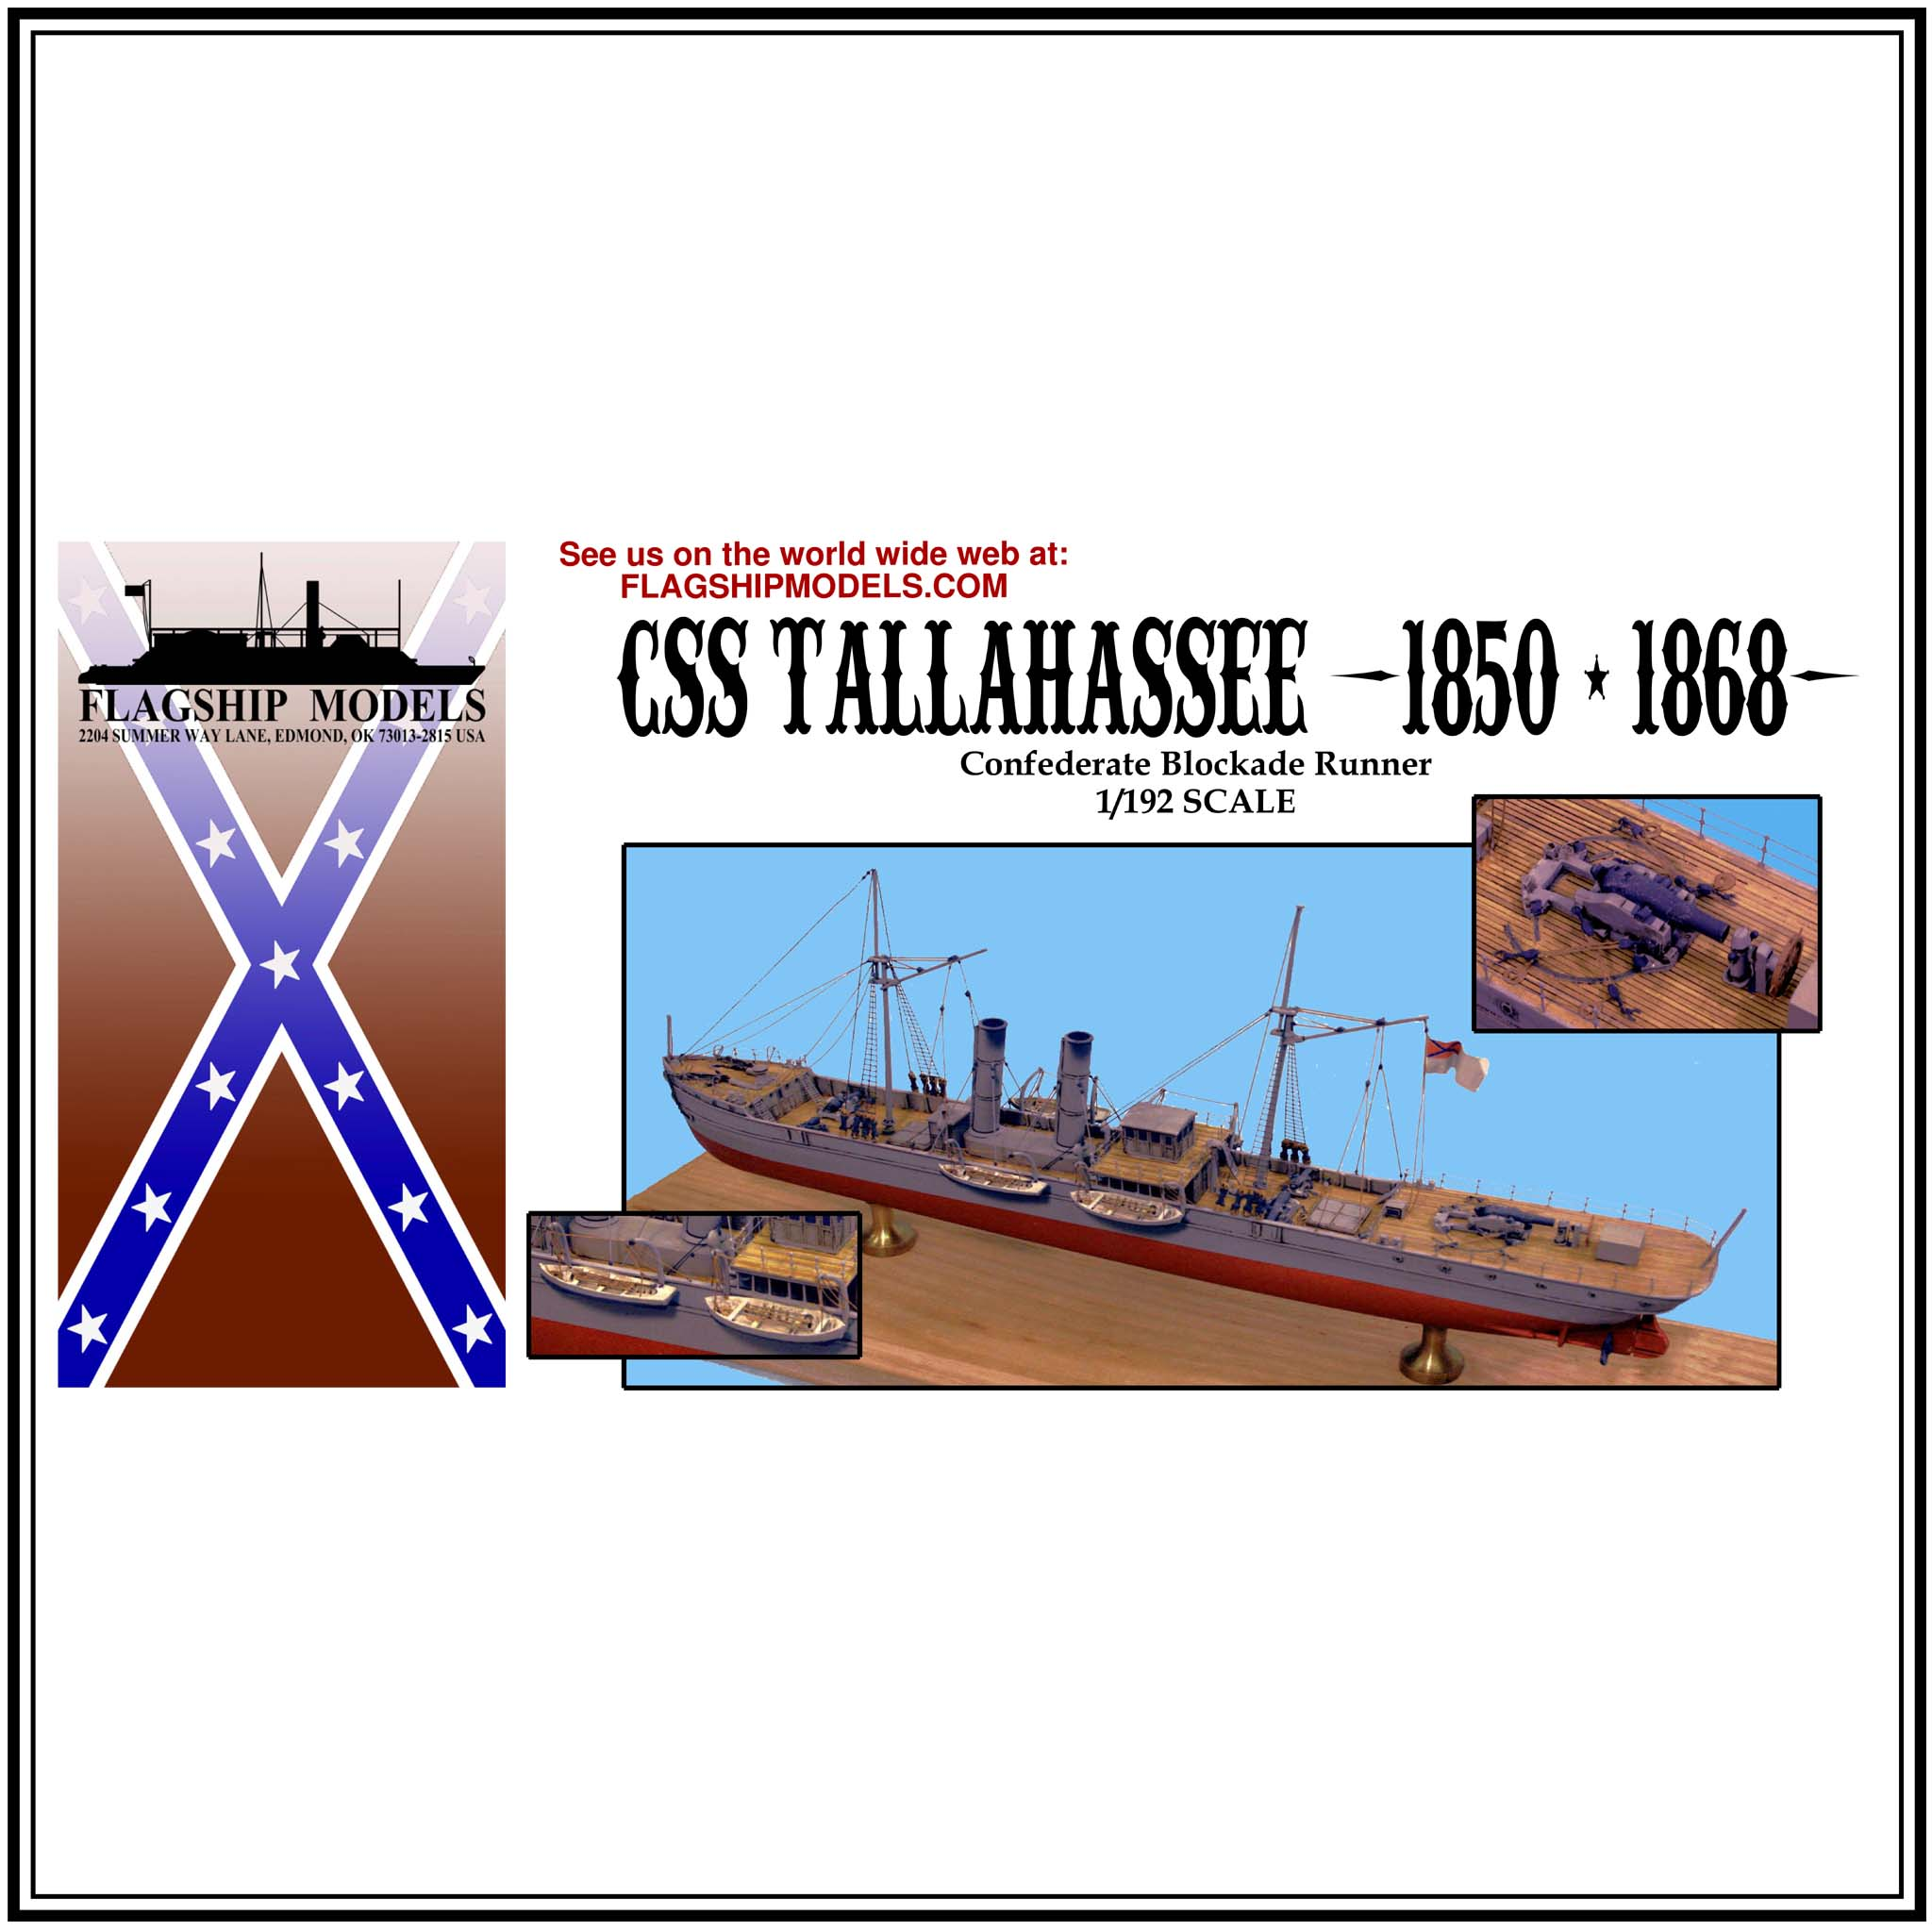 "CSS TALLHASSEE/ATALANTA (14.0"" long, detail set incl.)"